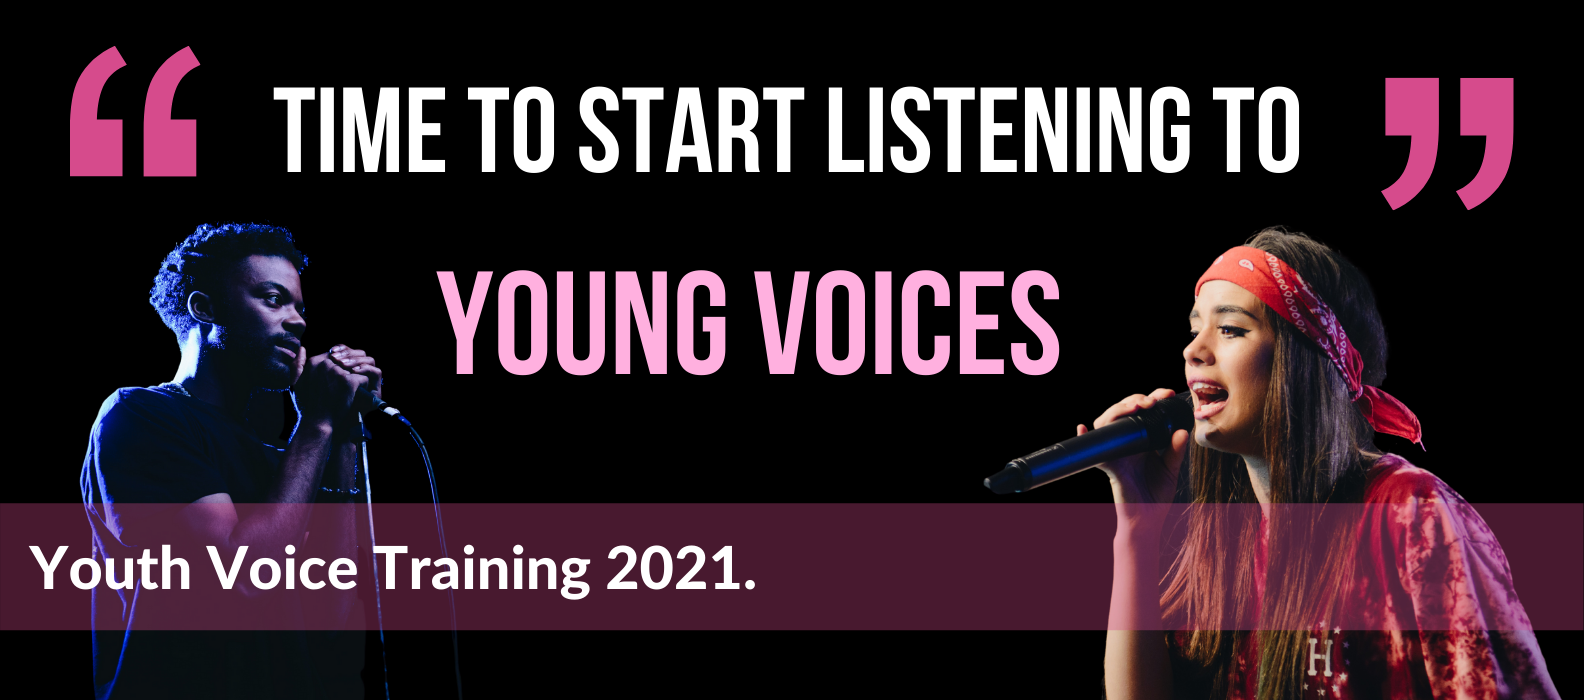 Youth Voice Training July 2021